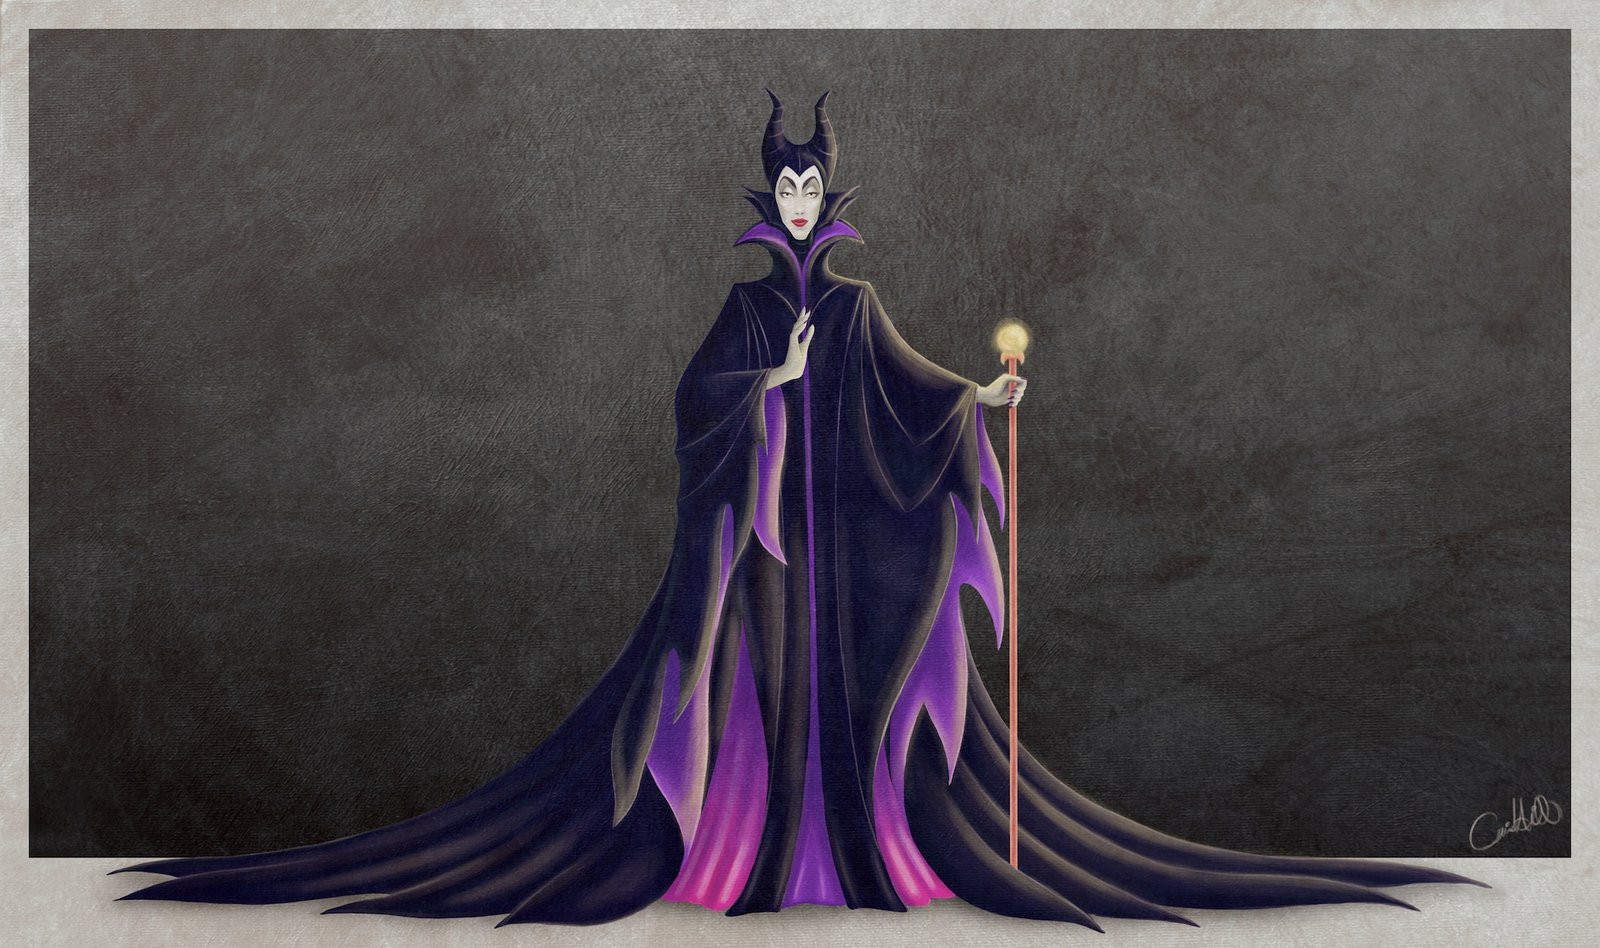 Watch Movie Maleficent Full Movie HD